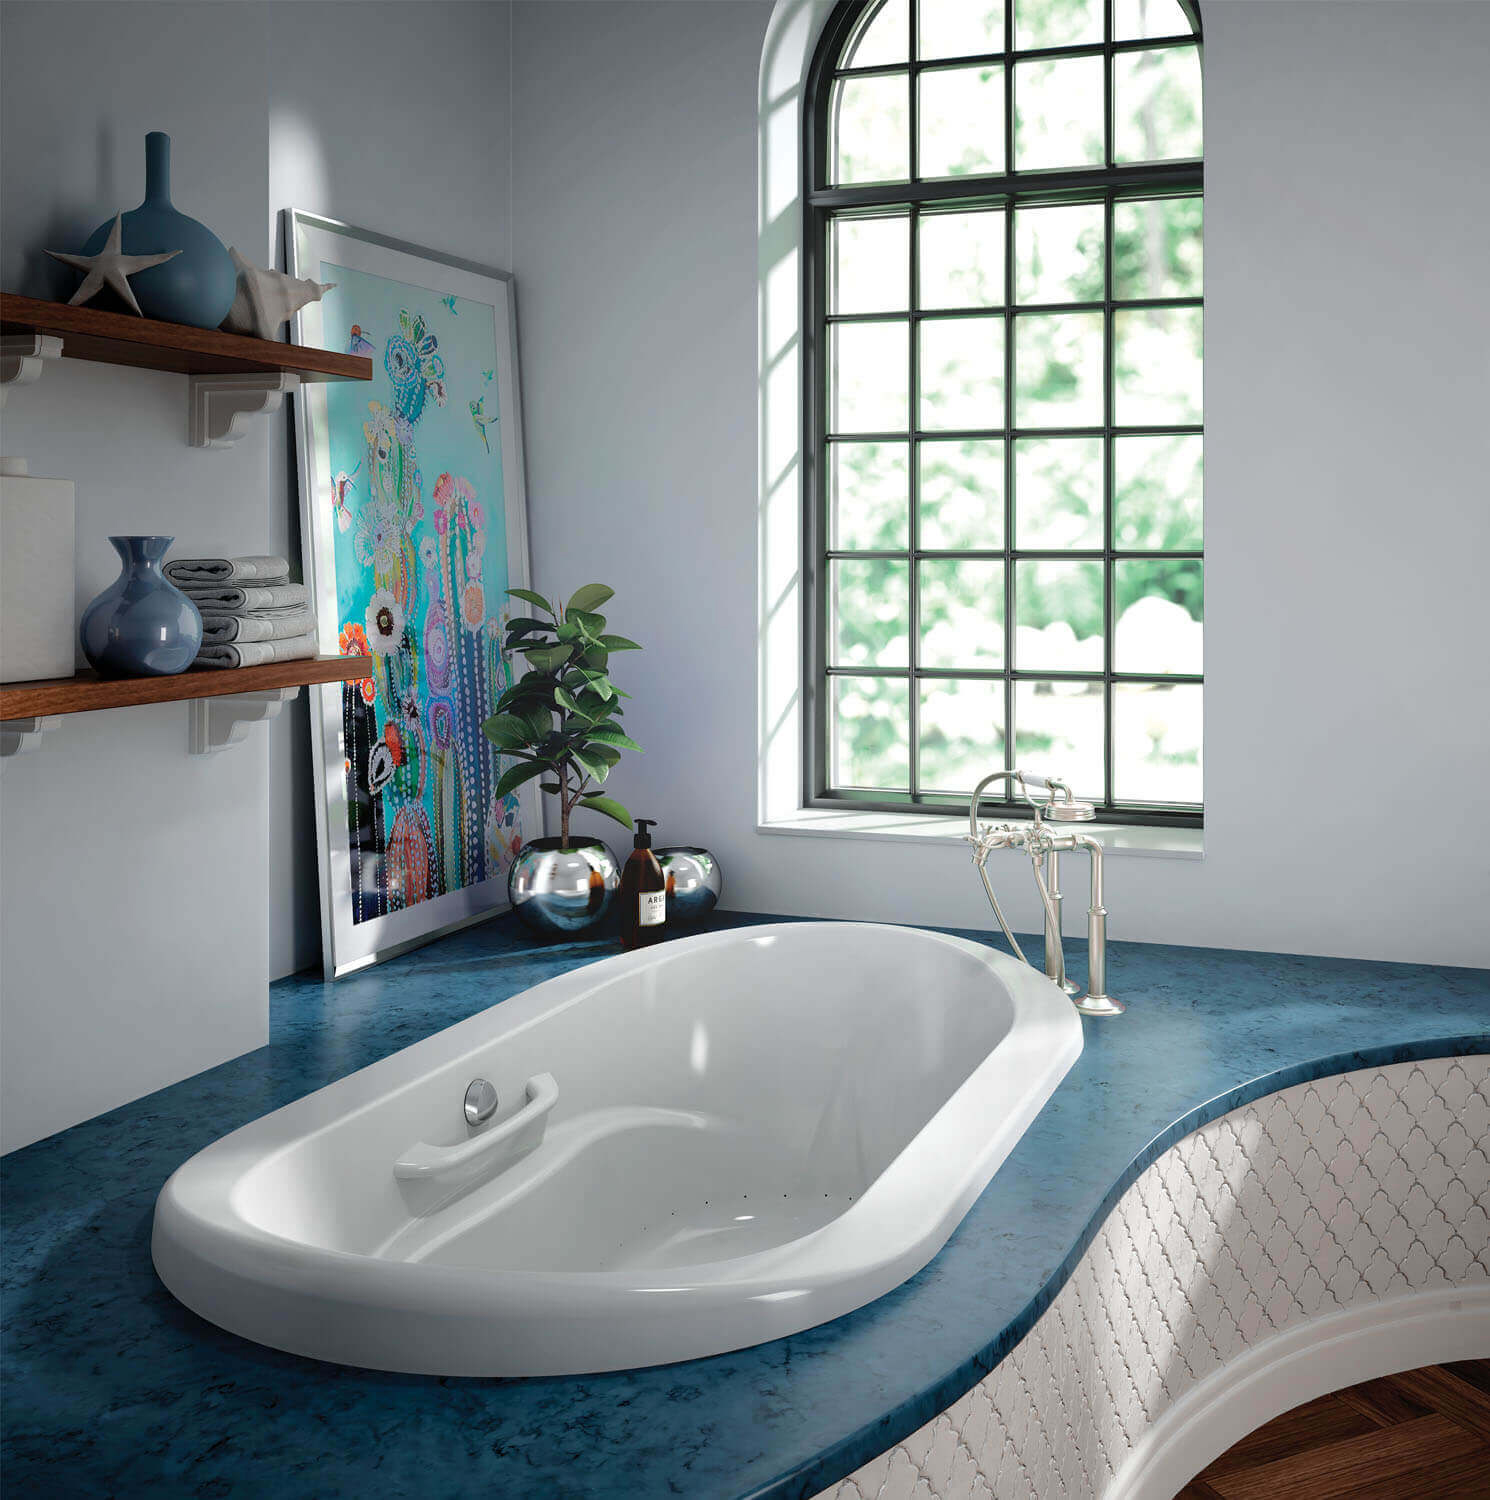 Bainultra Amma® Oval 7242 drop-in undermount air jet bathtub for two